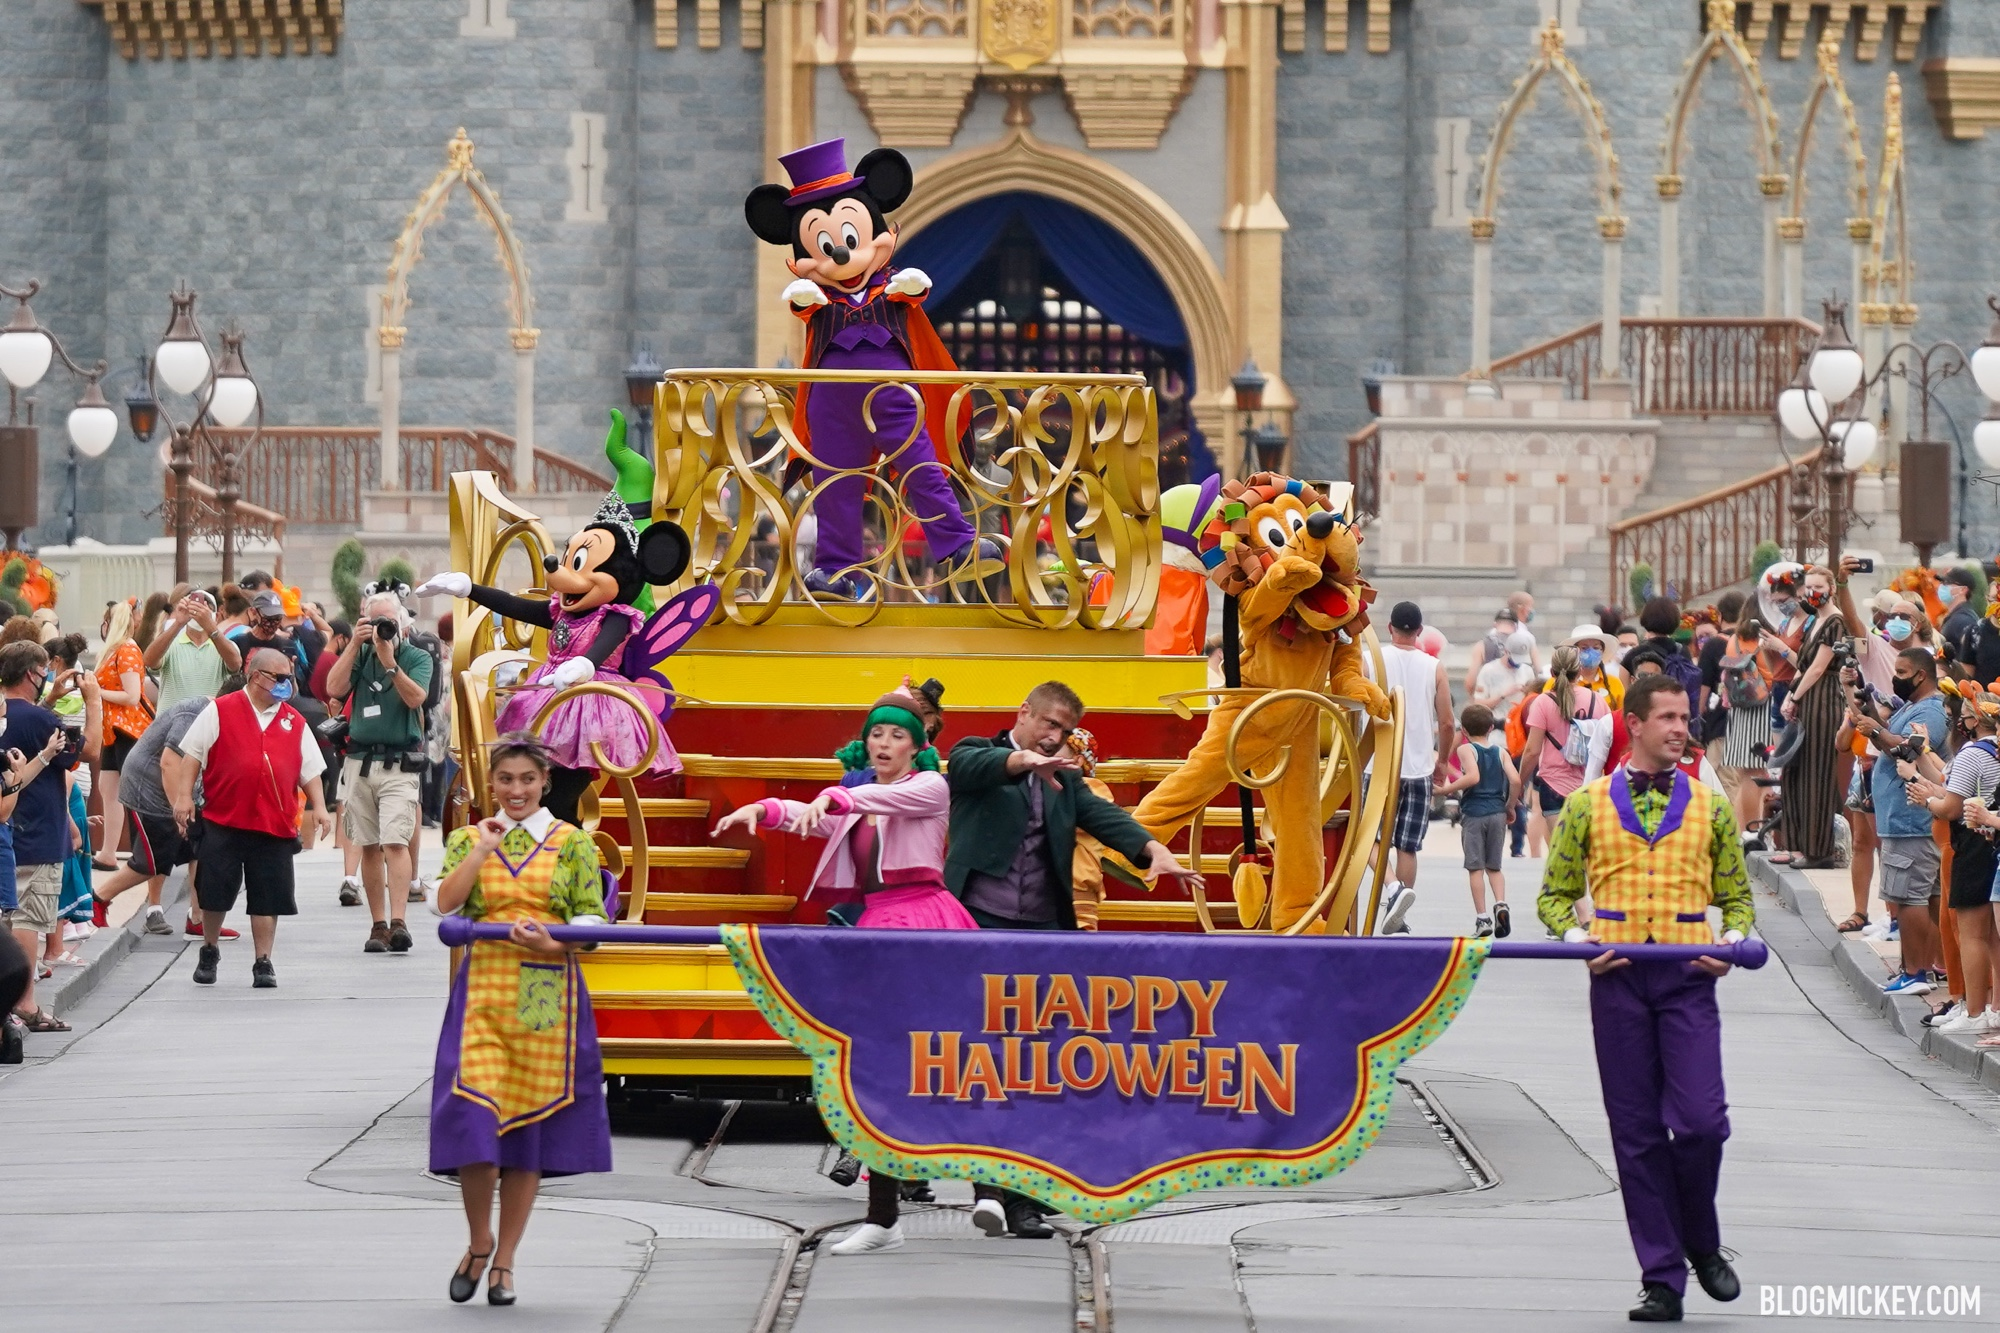 When Is Halloween 2020 Disney Paraide New Magic Kingdom Halloween Cavalcades Only Run Certain Days of